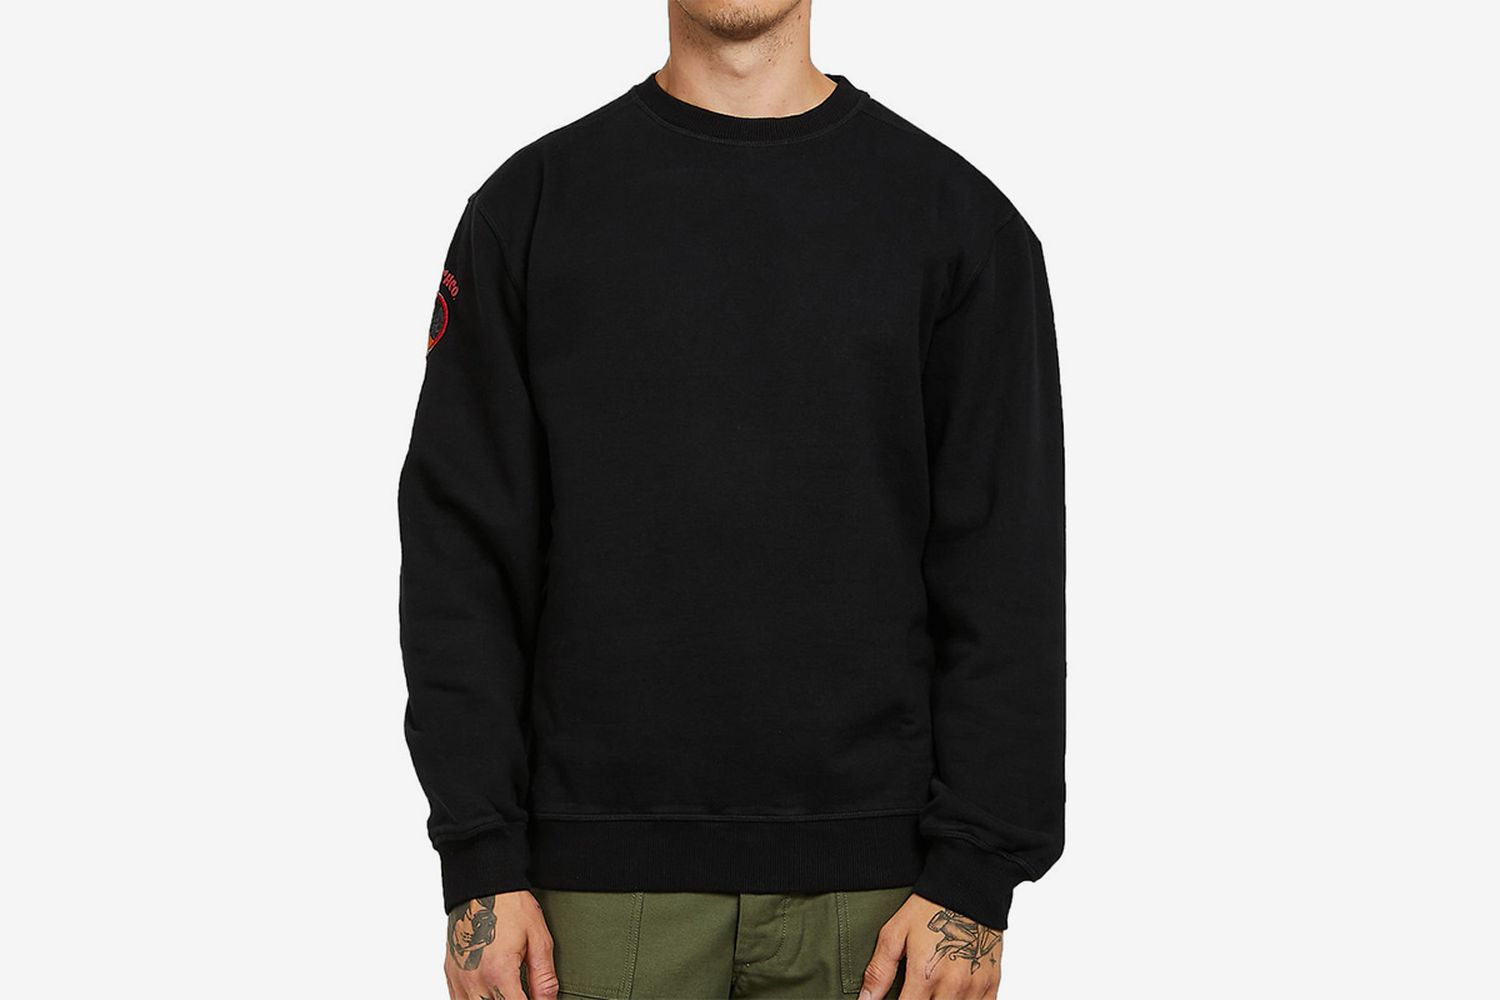 Vintage Panther Patch Sweater